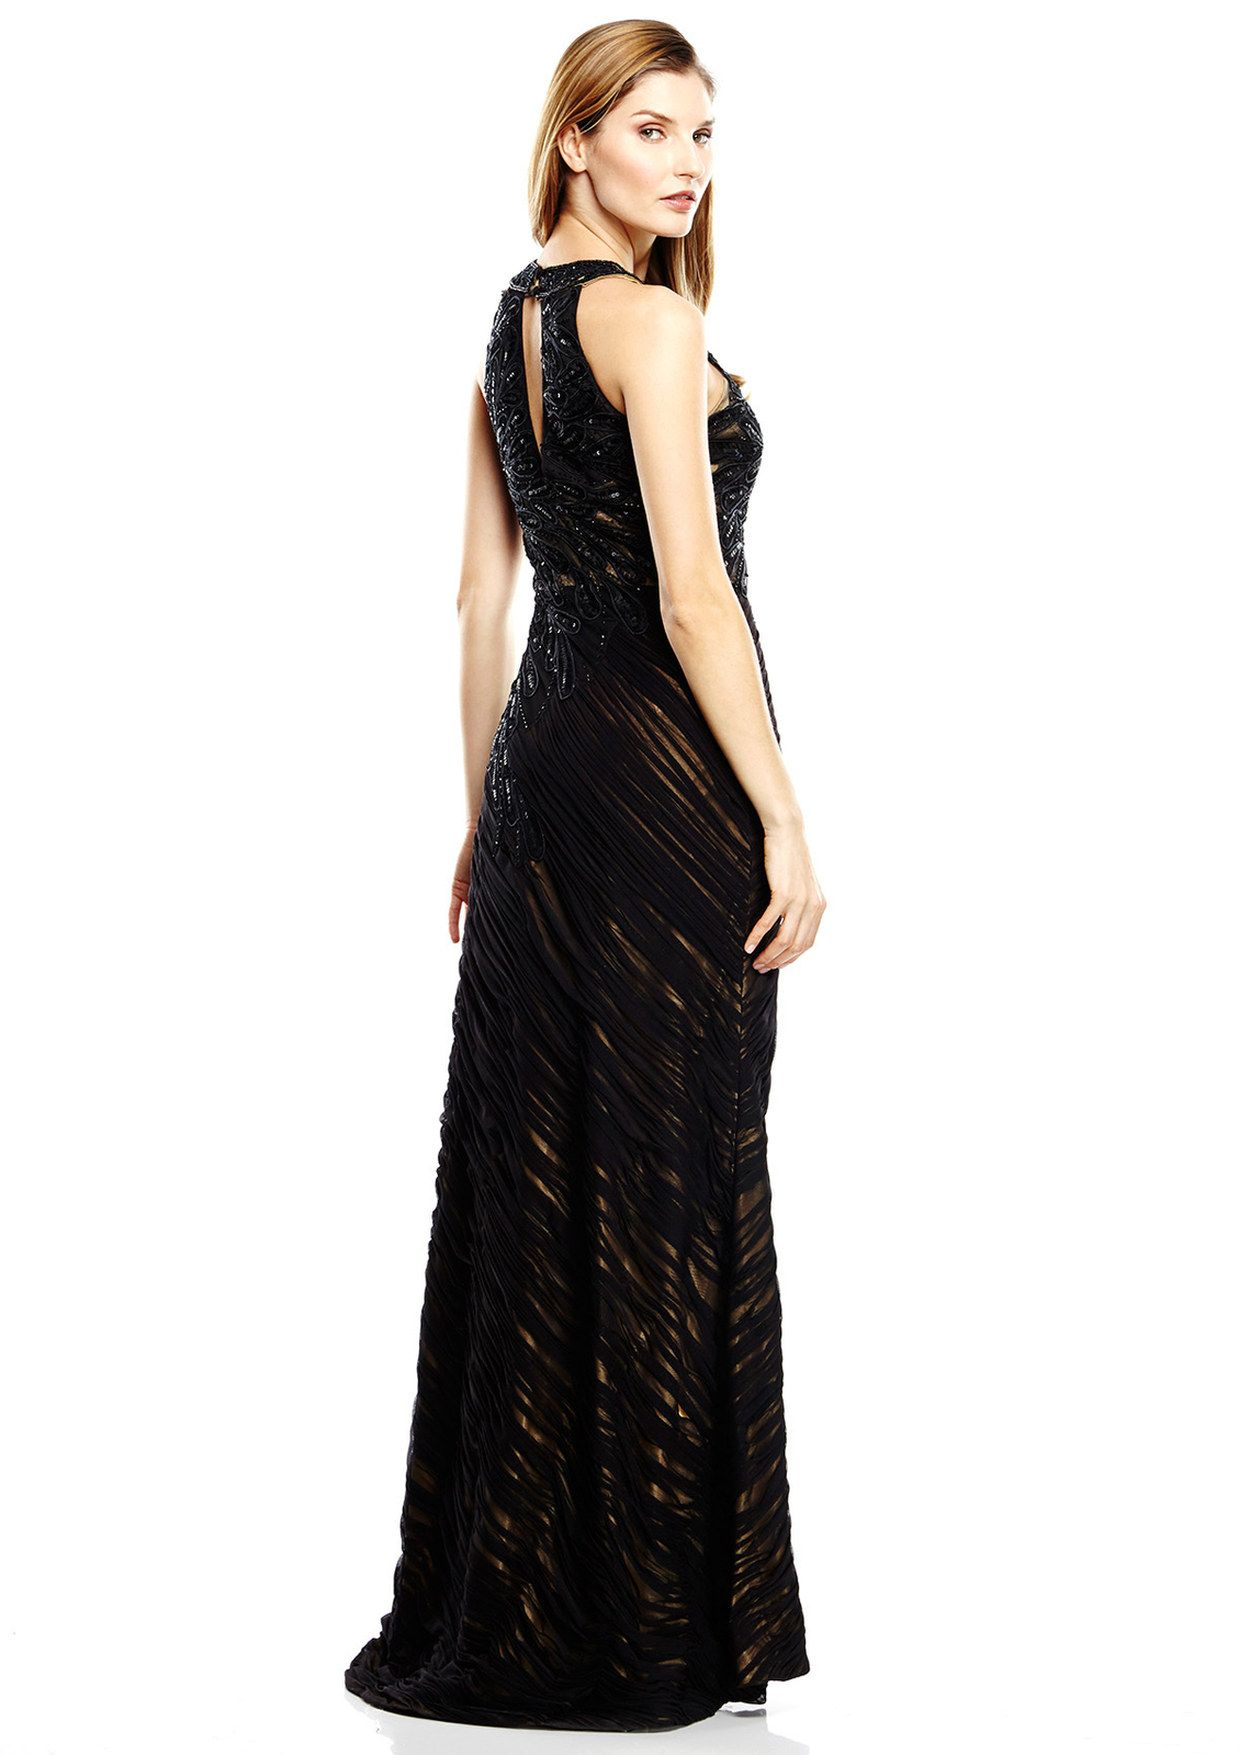 Sish ideel sue wong allover applique gown with keyhole